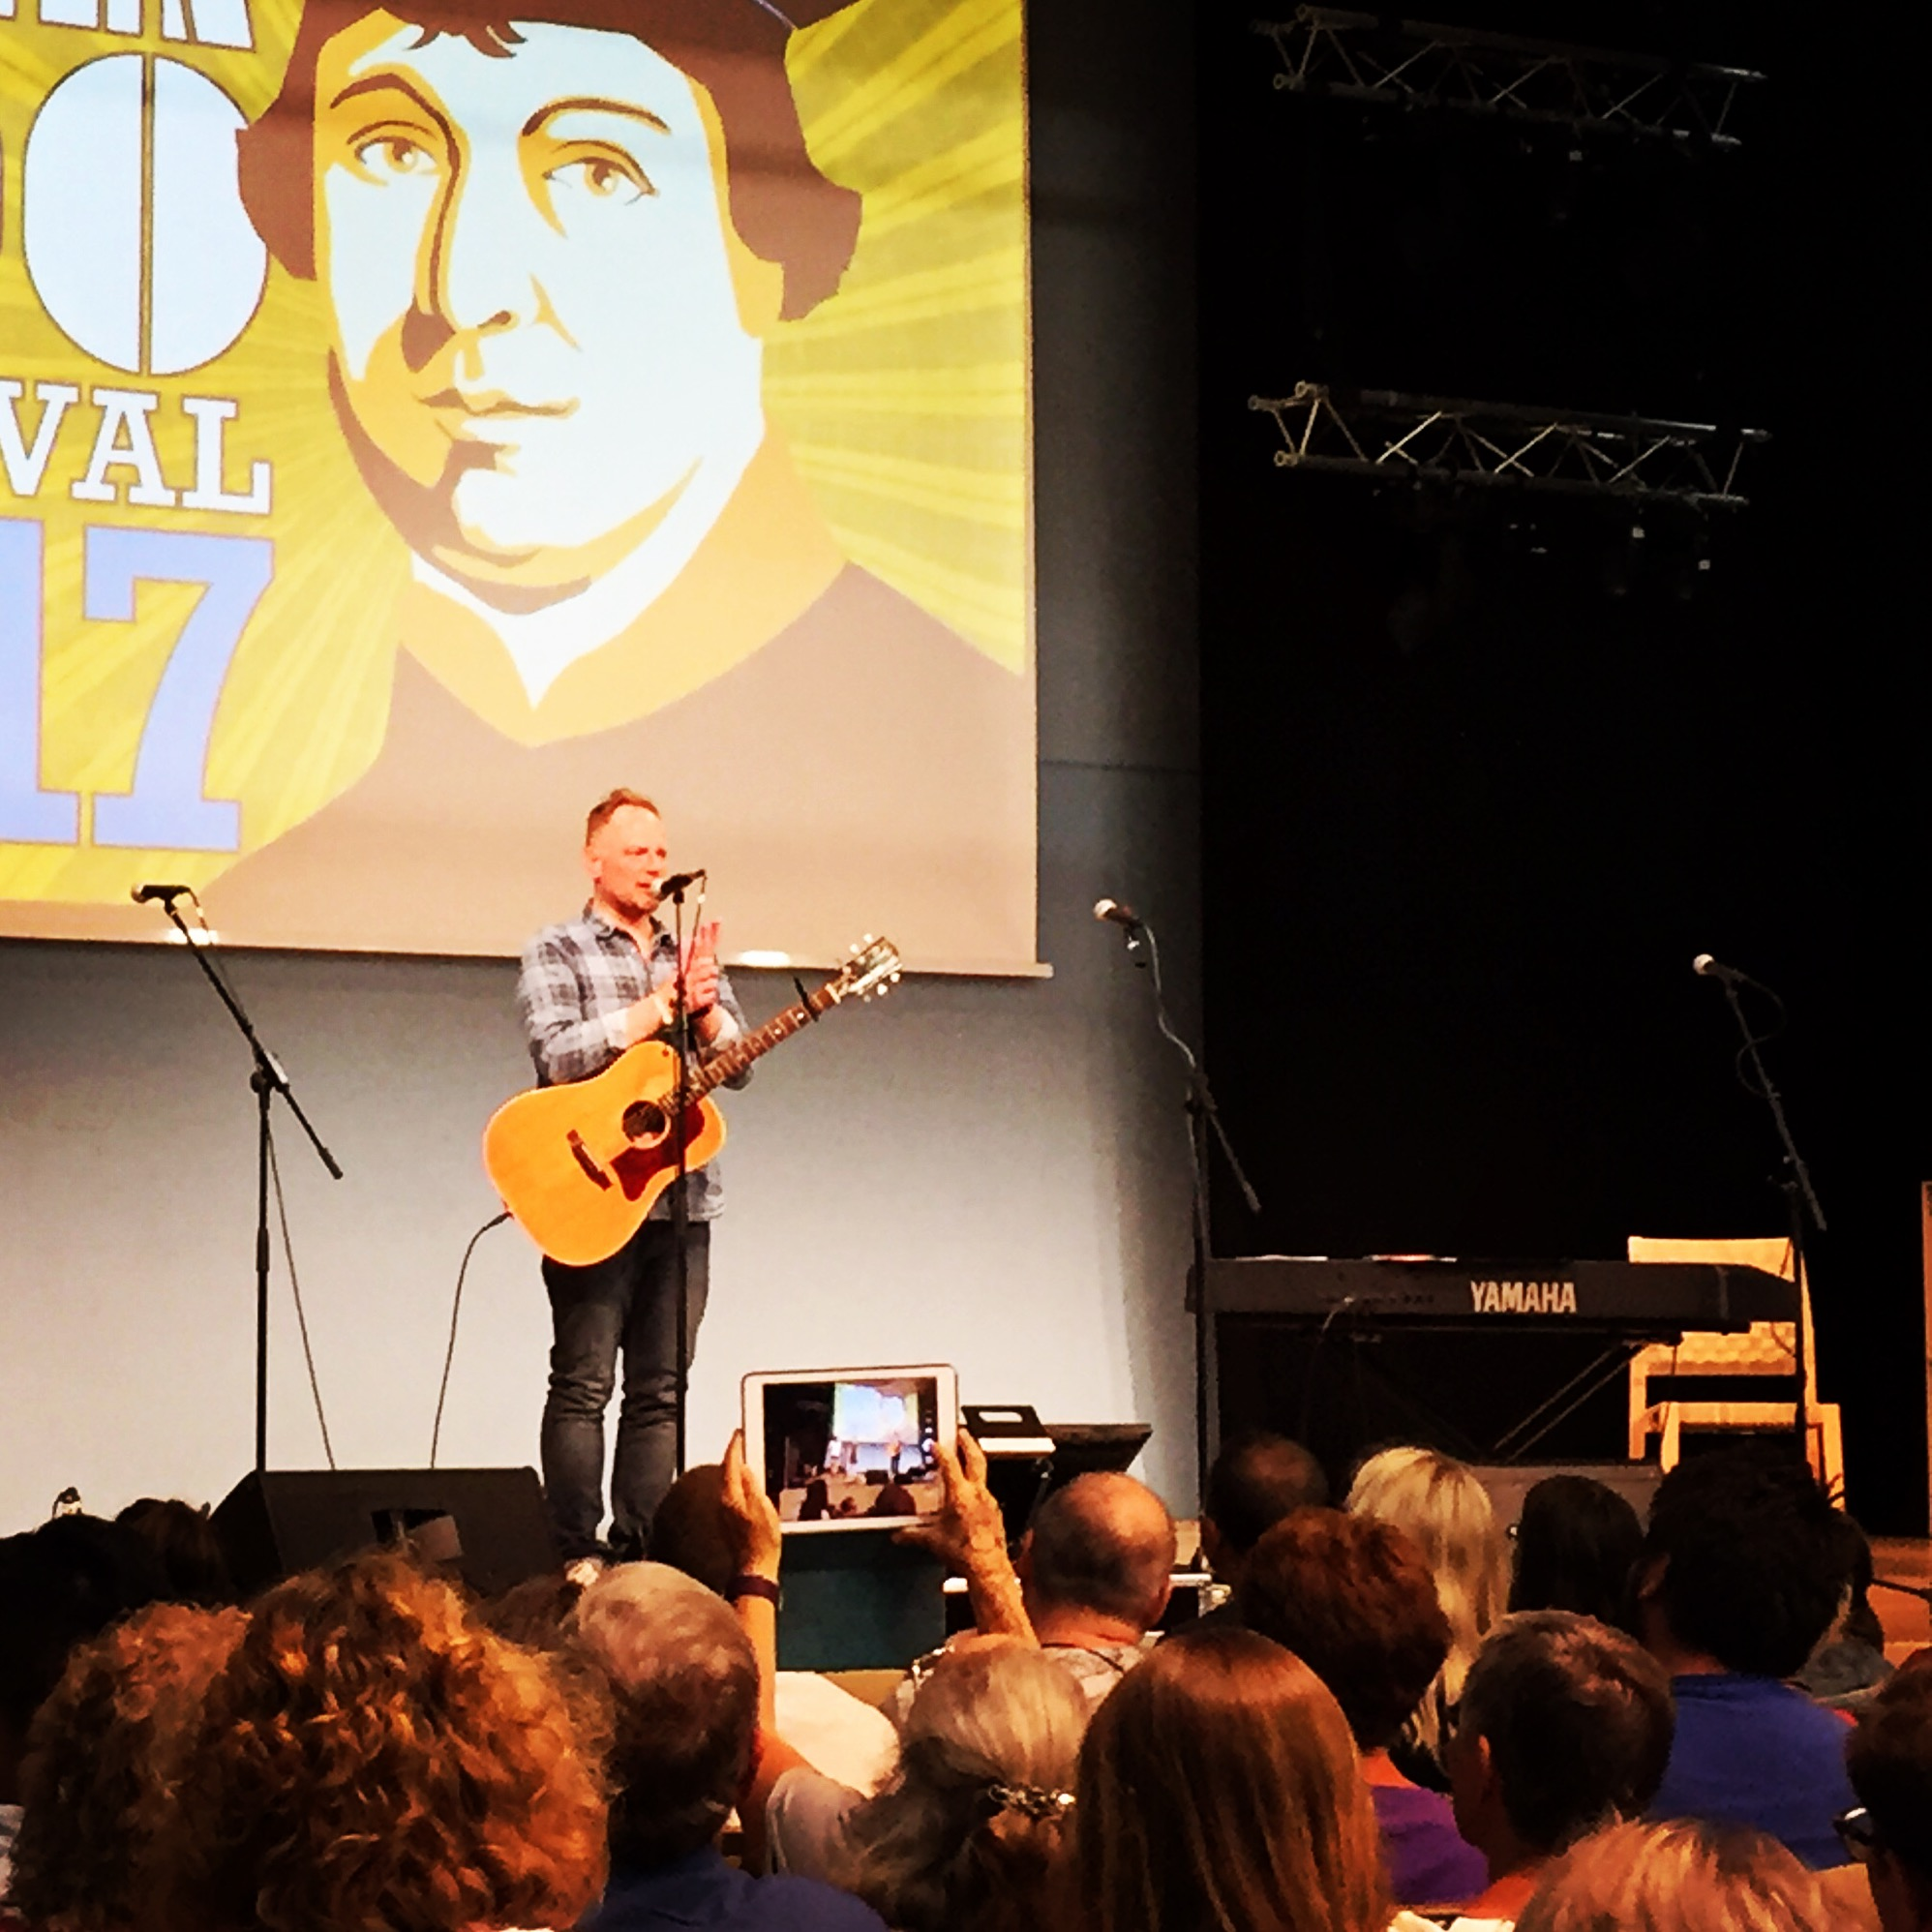 Whoa, I had a BLAST playing in Germany at the Luther500 Festival in June! Danke Schön to all!